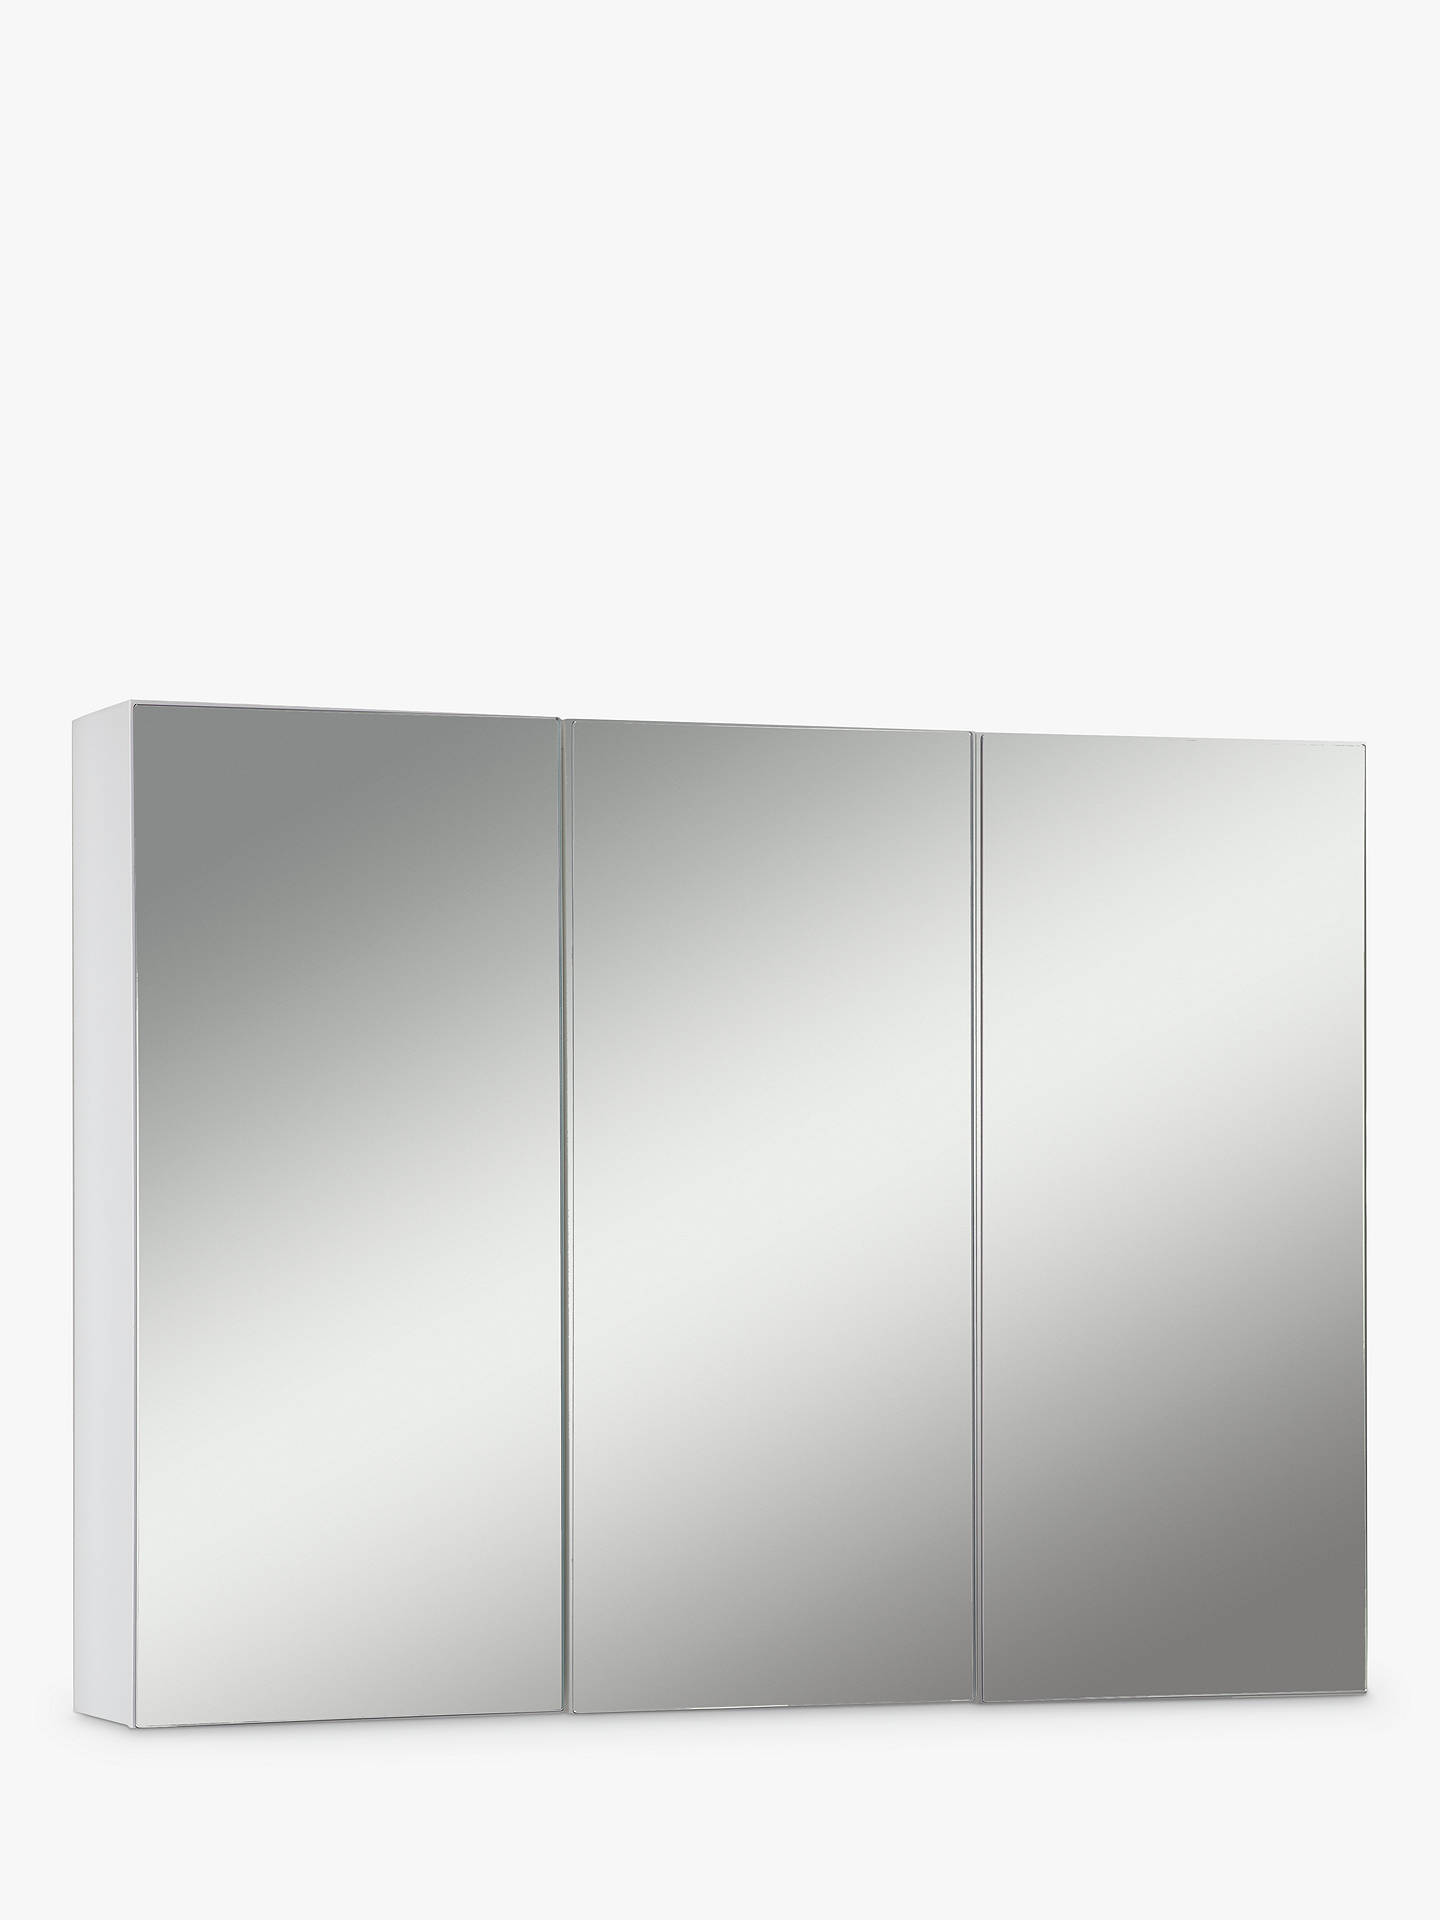 BuyJohn Lewis & Partners Triple Mirrored Bathroom Cabinet, White Online at johnlewis.com